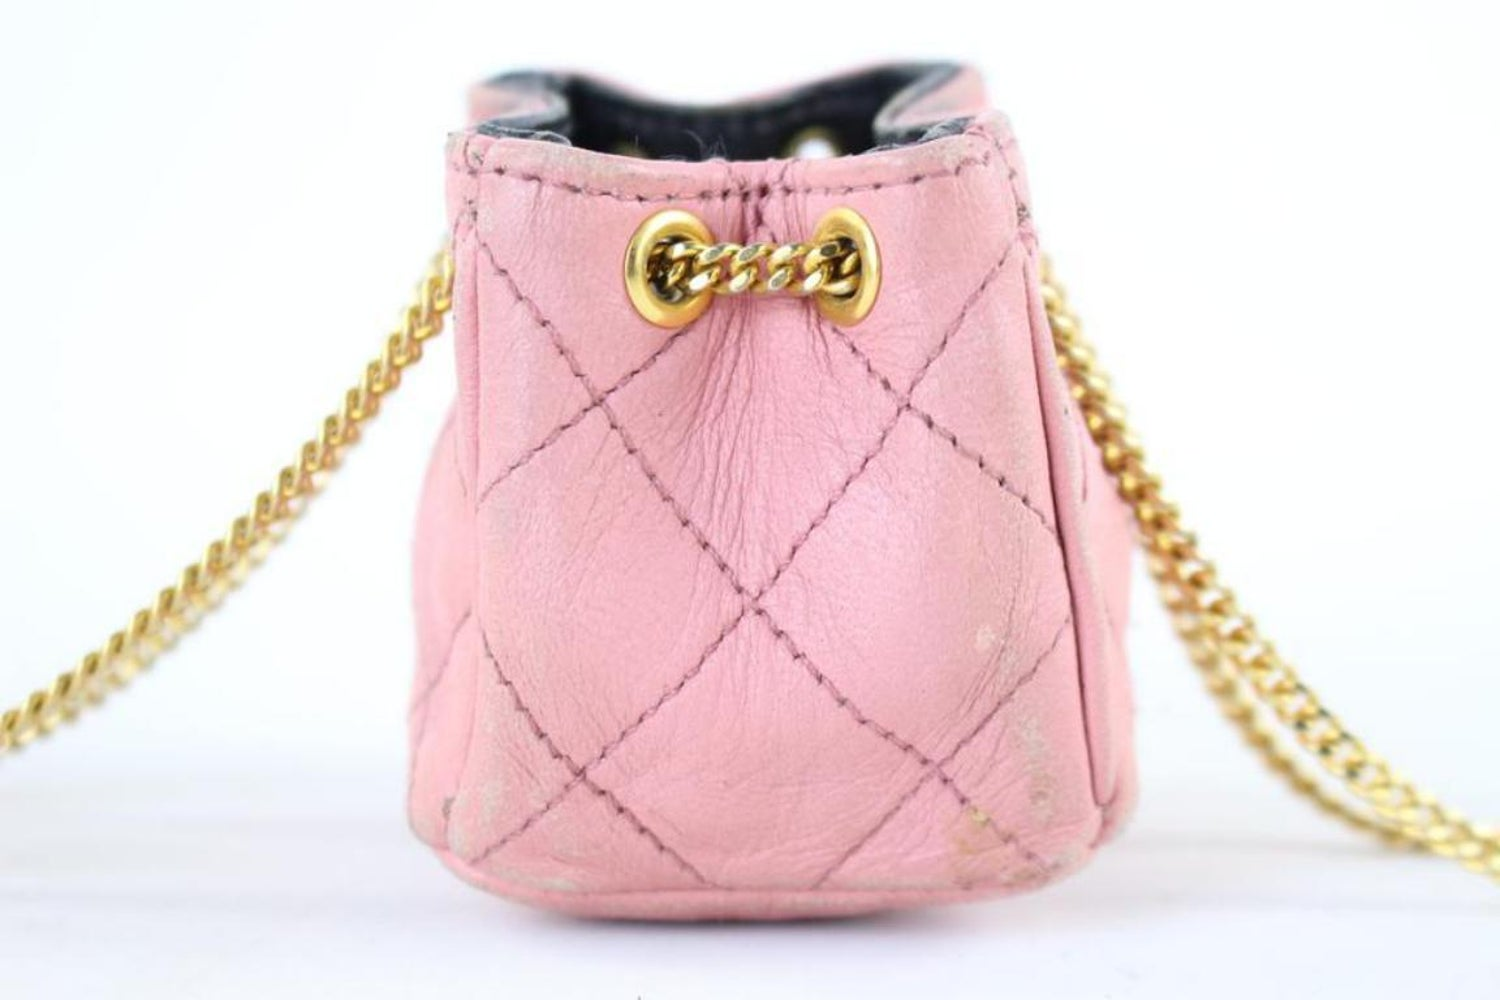 aff5d4f501497d Chanel Quilted Mini Cc Chain 222781 Pink Leather Clutch For Sale at 1stdibs